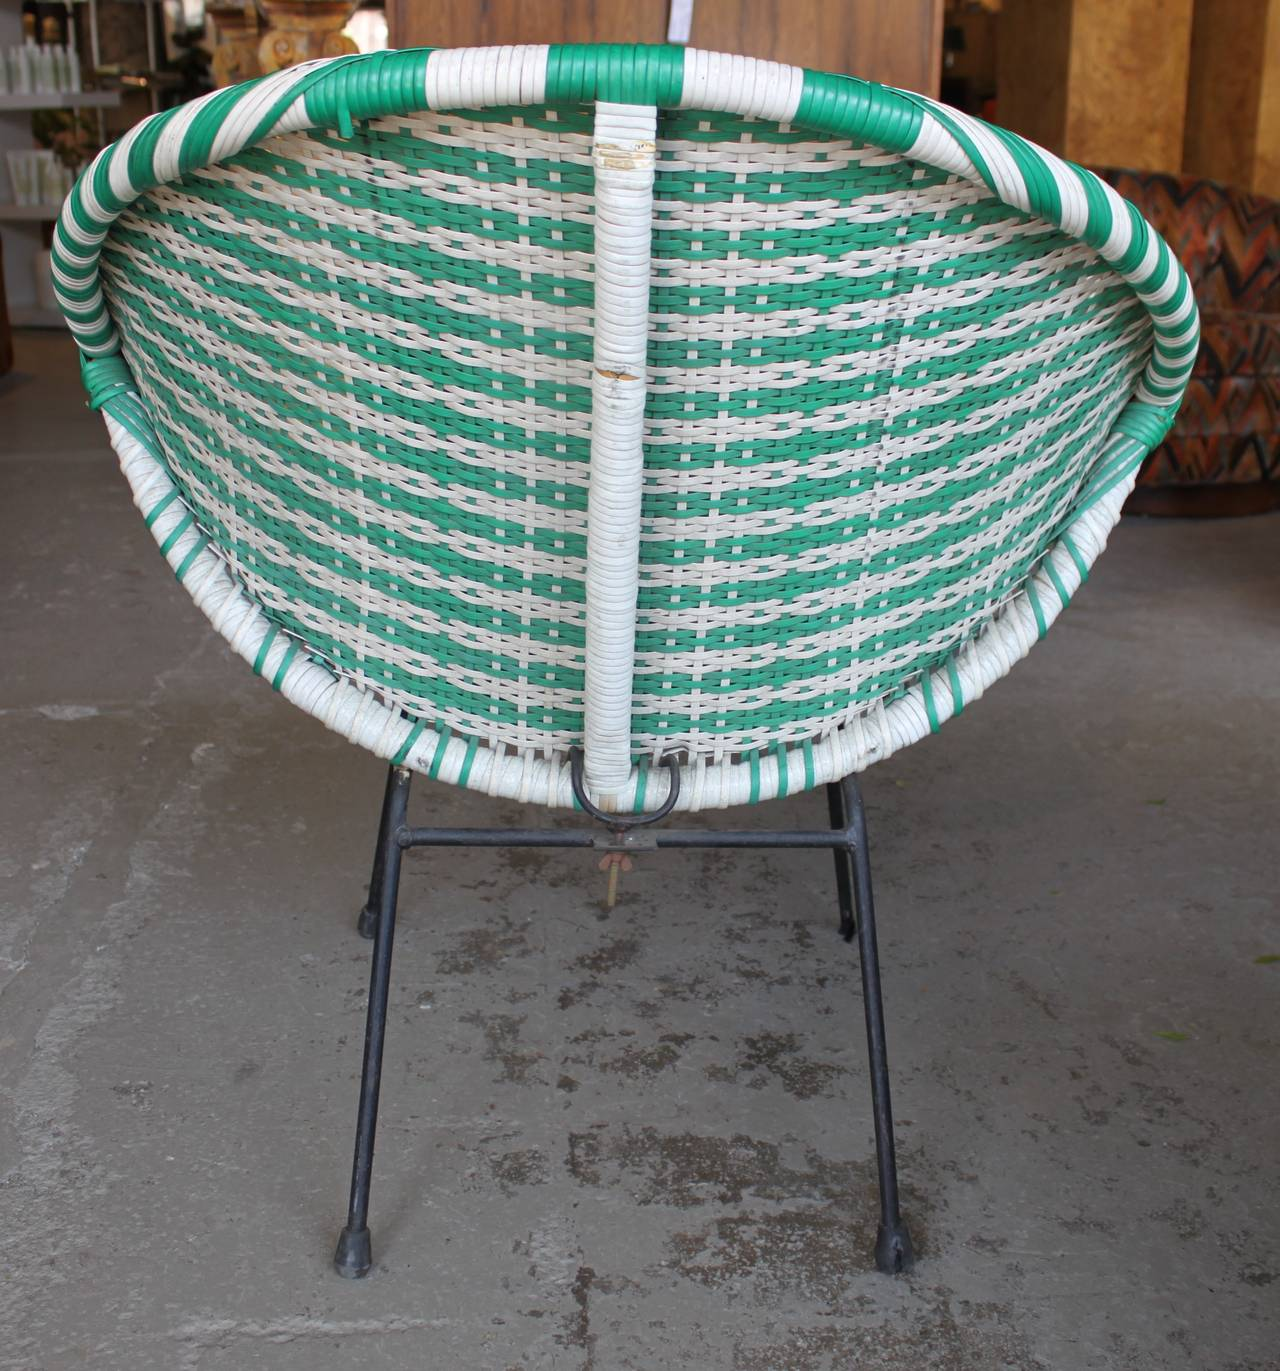 Vintage Green And White Woven Round Womb Chair 1960s At